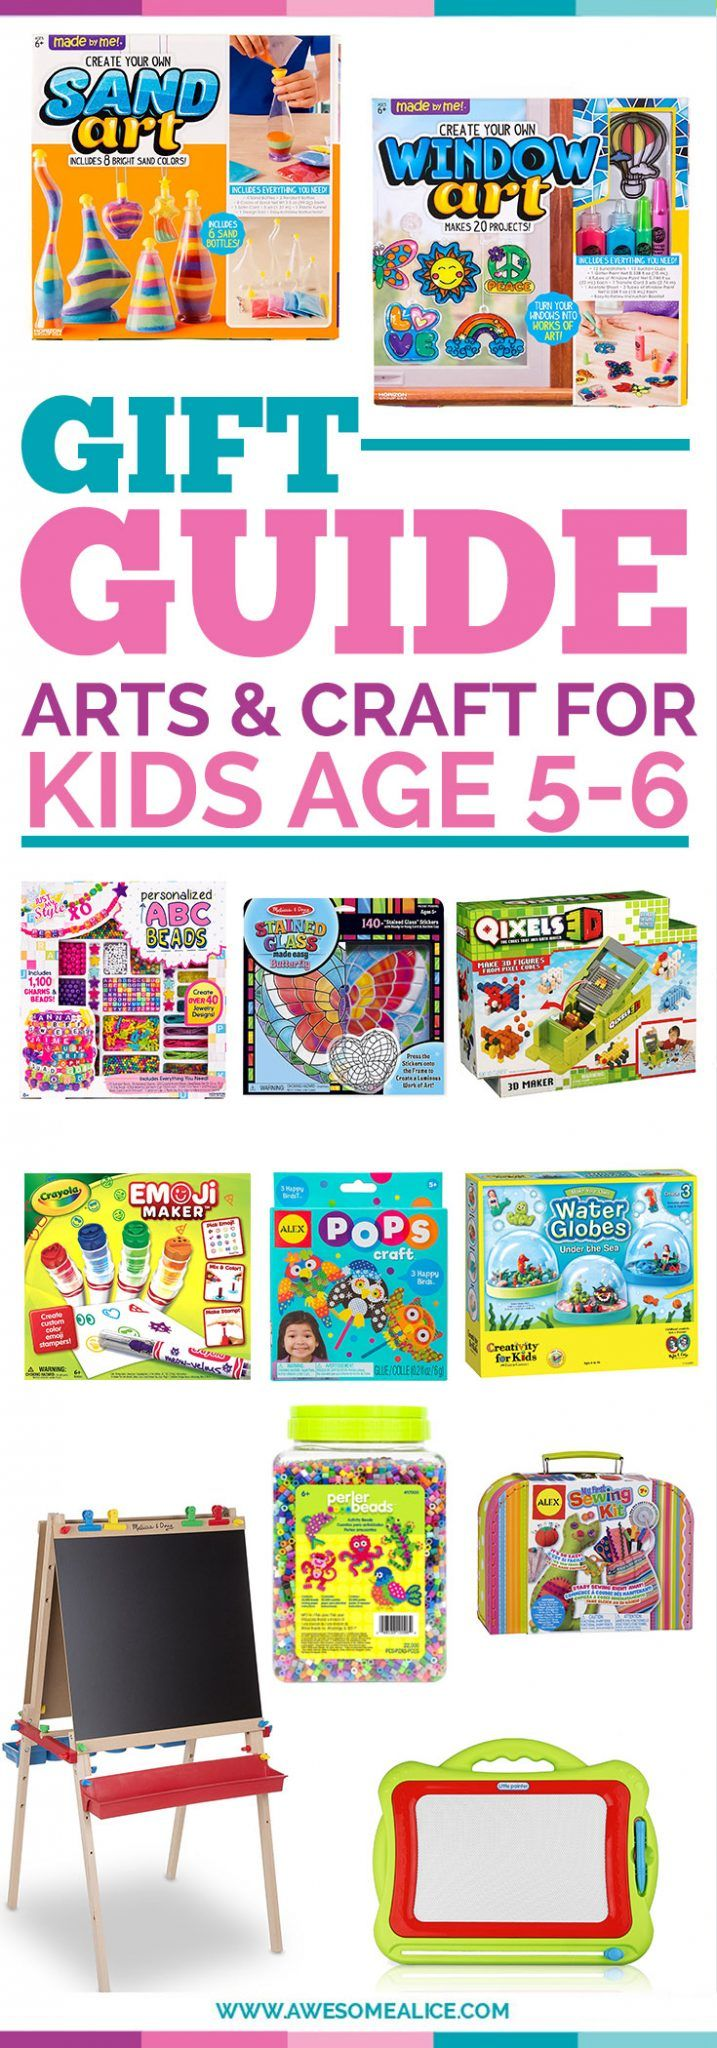 Arts & Crafts Gift Guide For Kids | Christmas Gifts For Kids | Perfect Christmas Gift For Five year olds | The Best Non-Toy Gifts | The Best Kids Toys For six Year olds | Kids Christmas Gift Guide | The Best Children Gift Guide | Holiday Gifts For Kids #musthaveproducts #bestproducts #ChristmasGifts #giftguide #kids #Christmas #Non-toys #ChristmasGifts | www.awesomealice.com